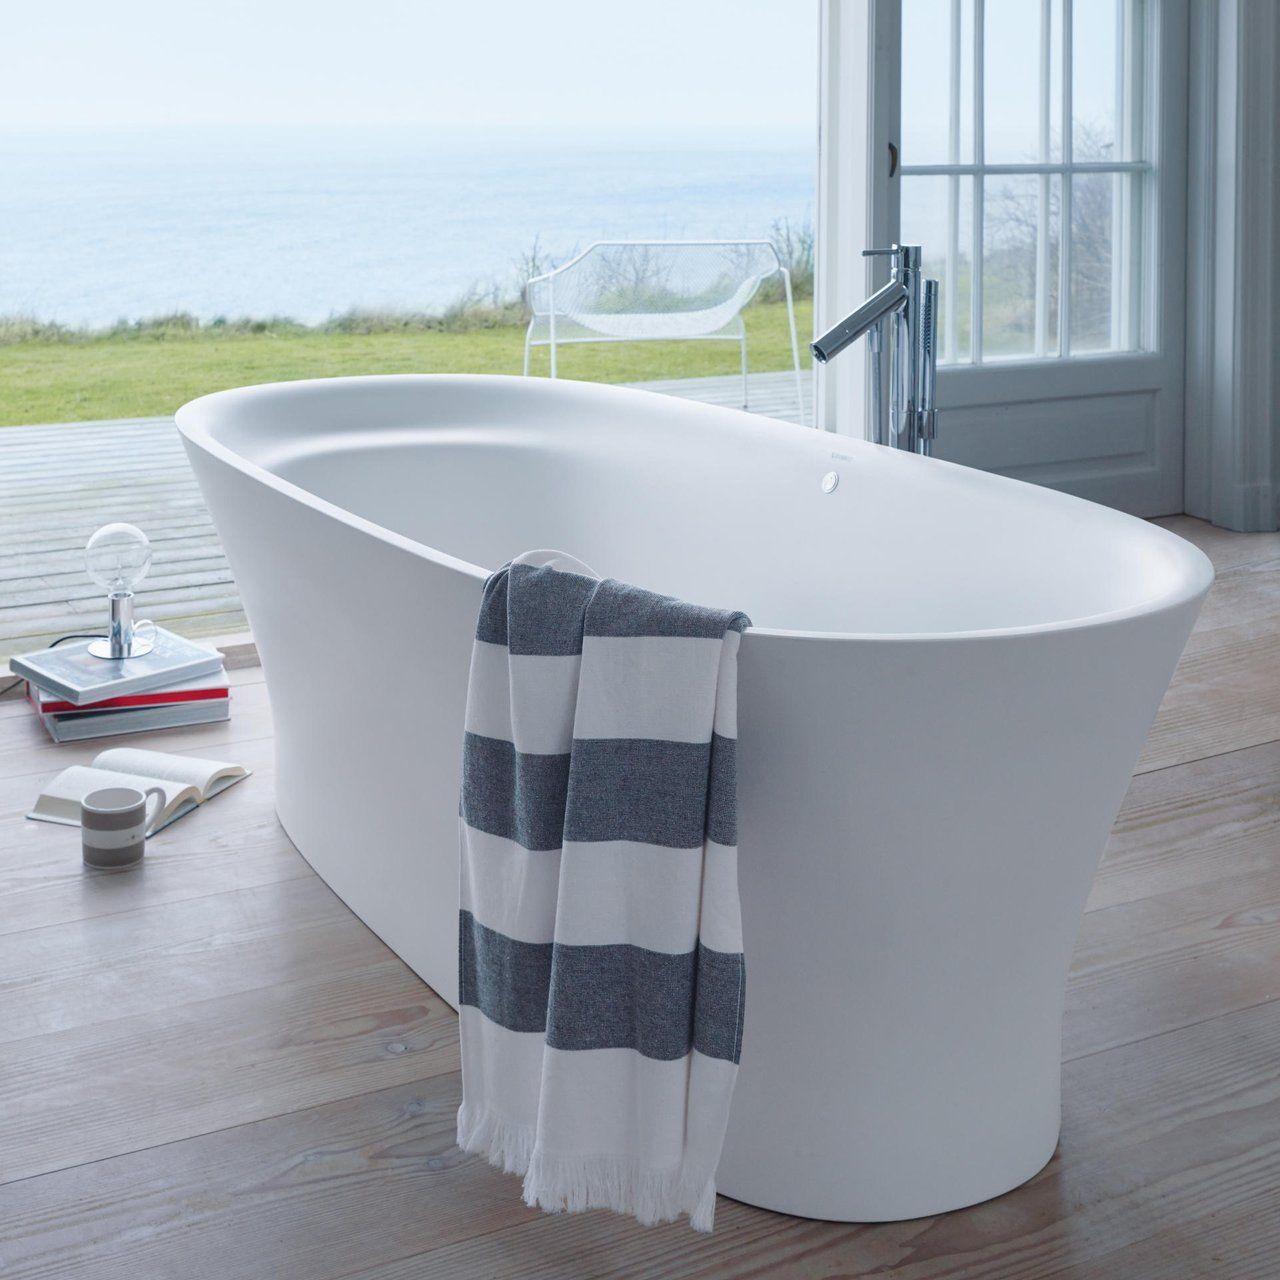 Cape Cod Freestanding Soaker Tub #awesome, #bathtub, #relax | Viral ...